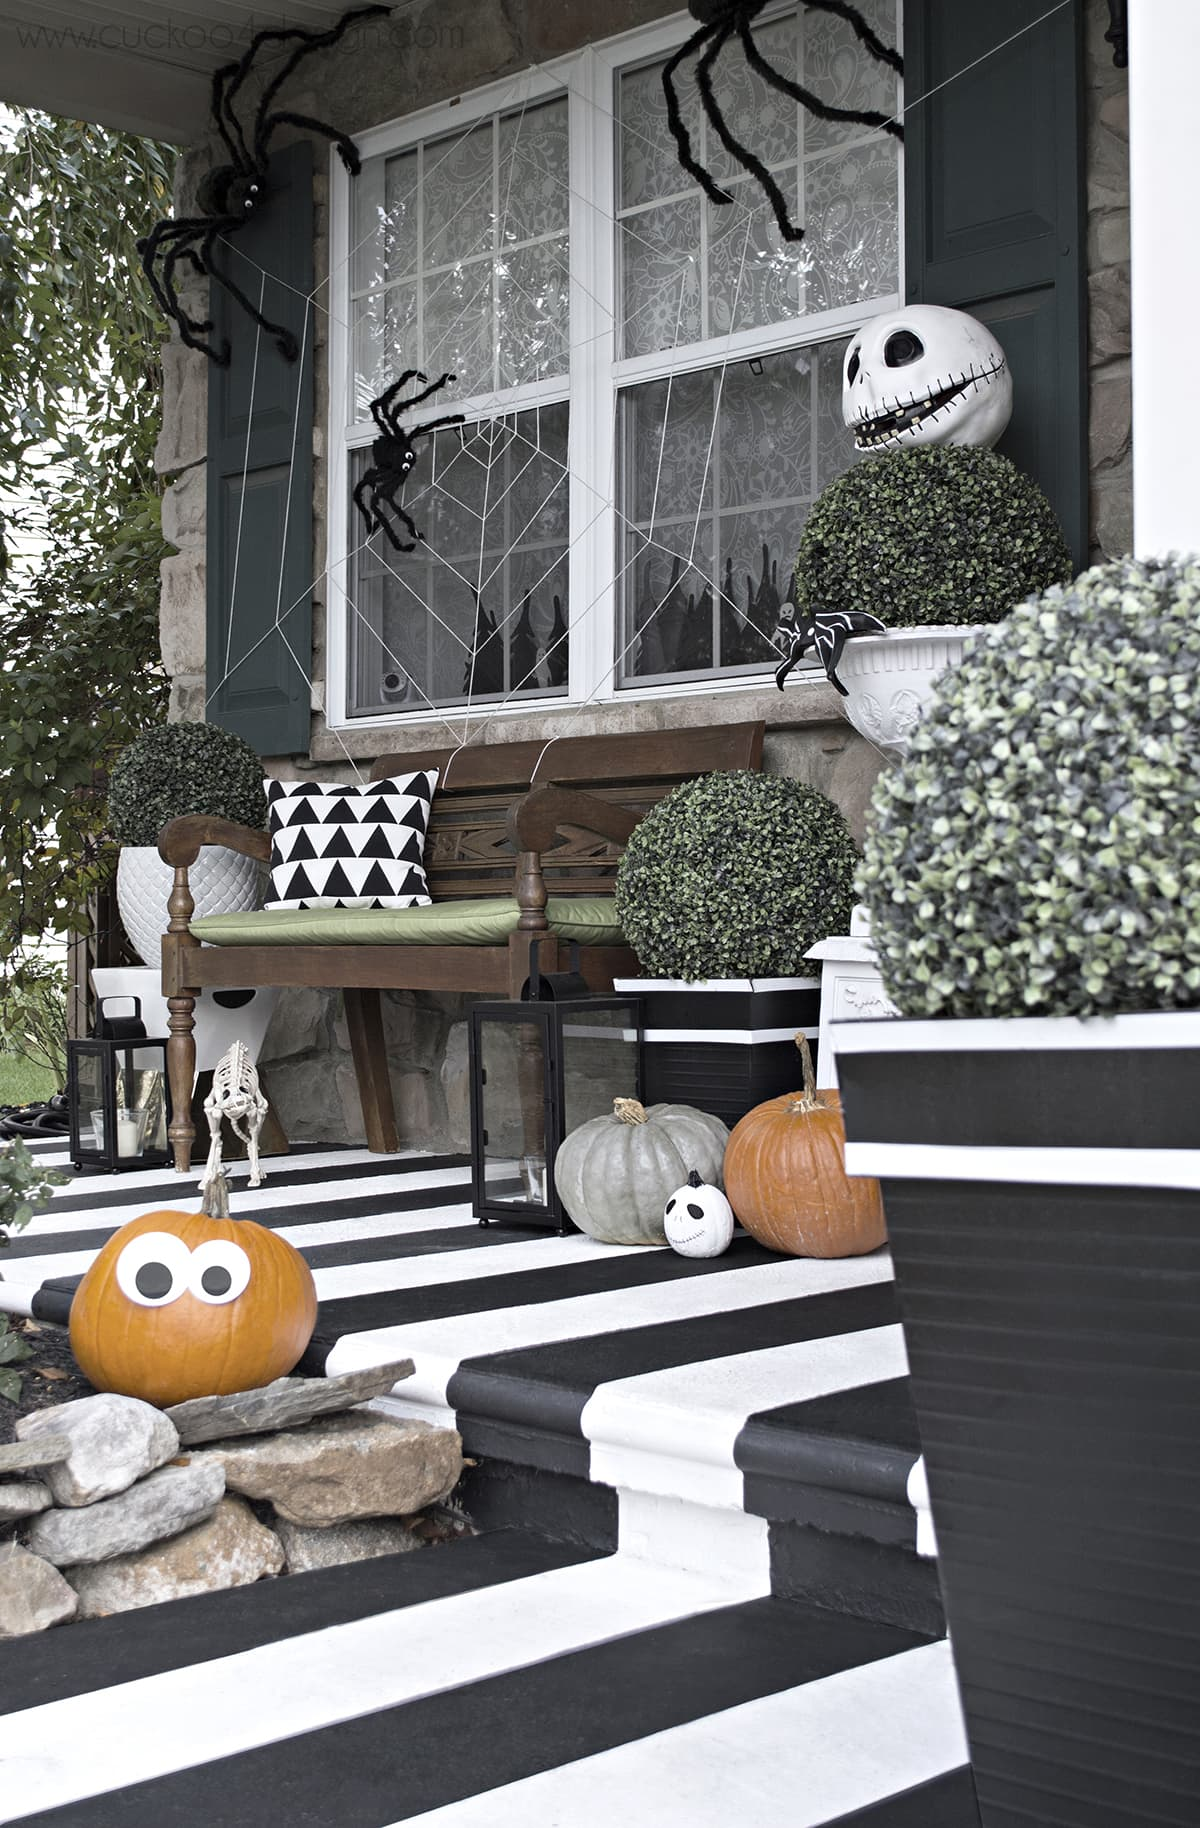 Roof Design Ideas: Black And White Halloween Front Porch